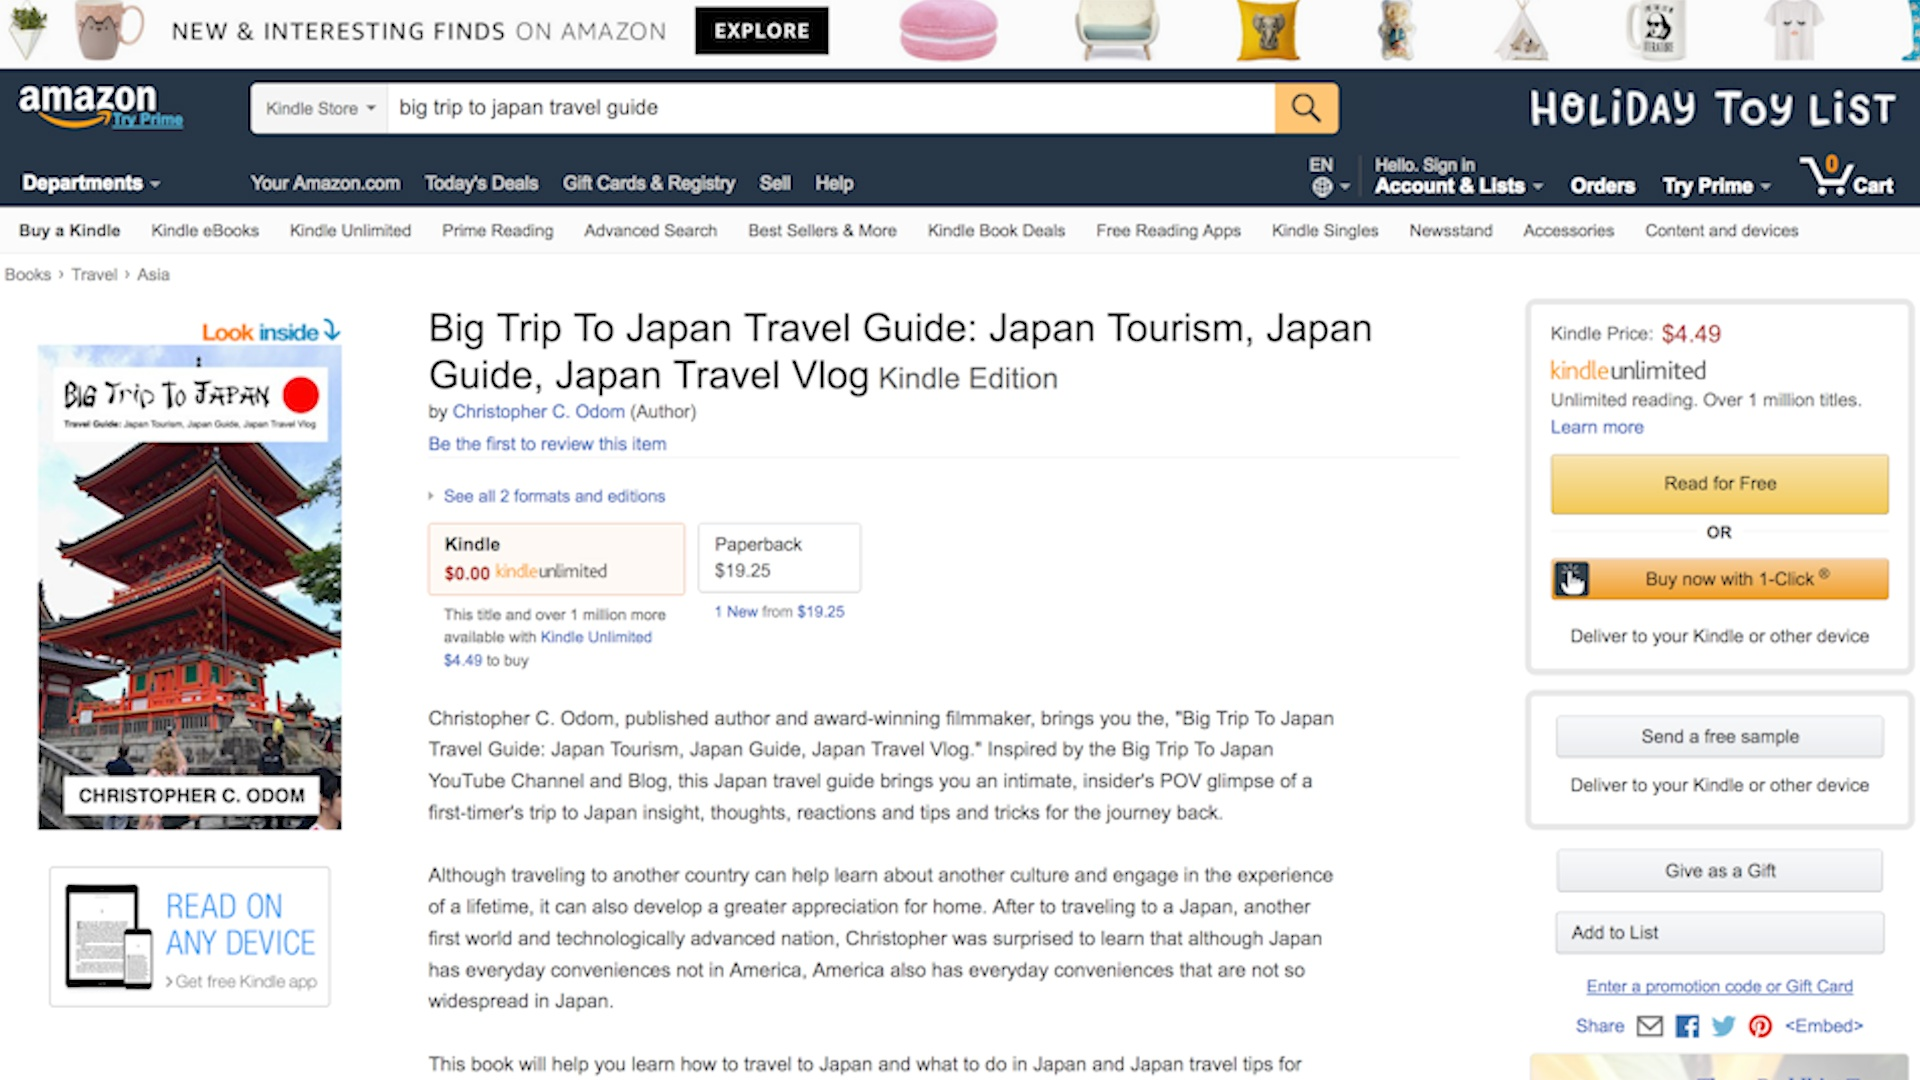 Travel Products Reviews - Japan Travel Guide Book - Tourism Guide Travel Vlog